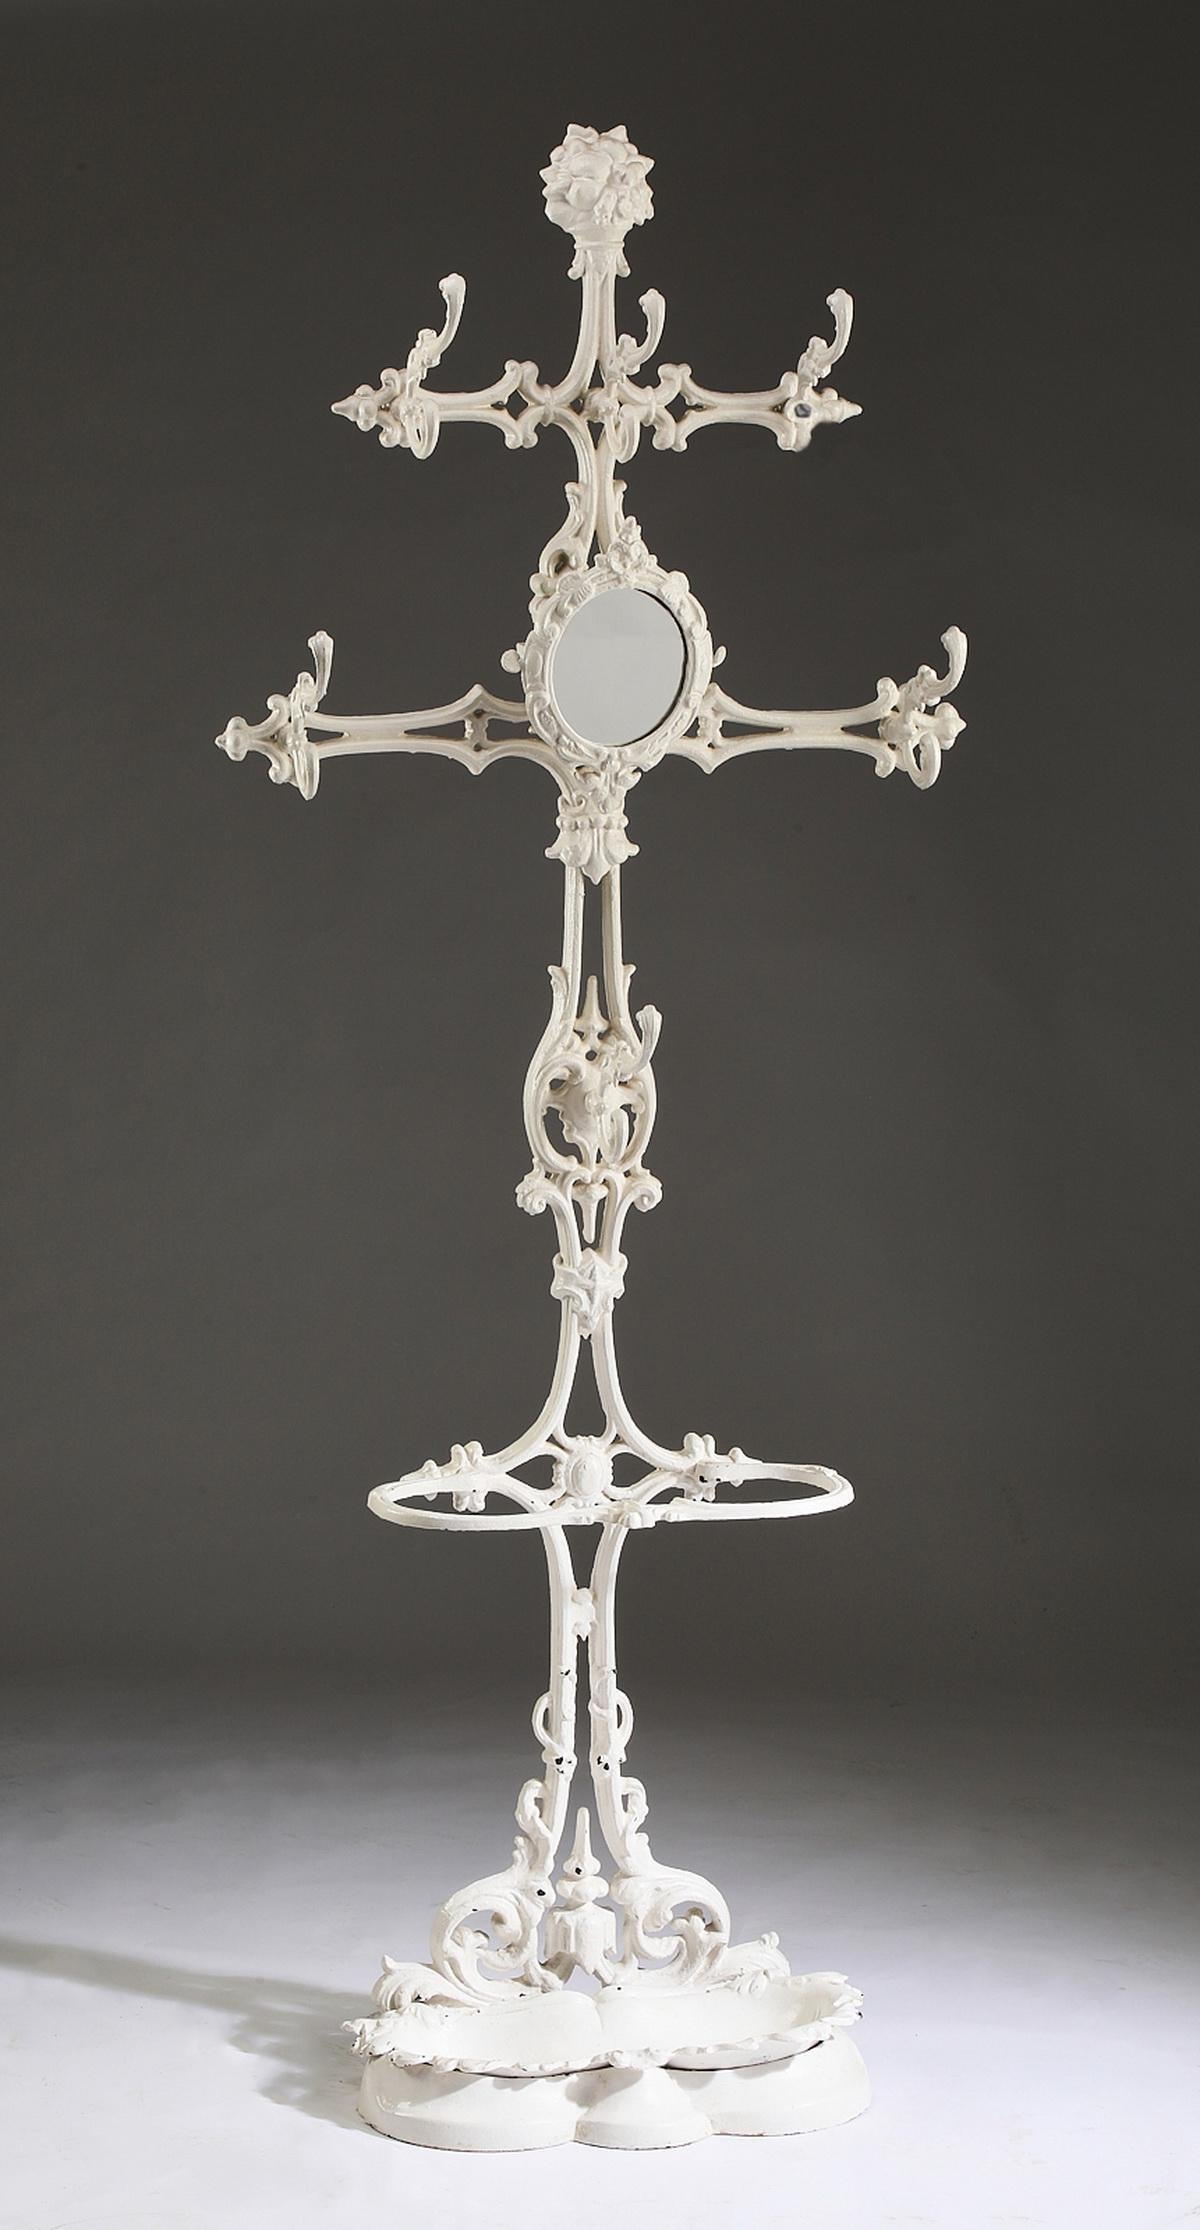 For Auction Late 19th C Paint Decorated Cast Iron Hall Tree 0313 On Jan 23 2021 Great Gatsby S Auction Gallery Inc In Ga